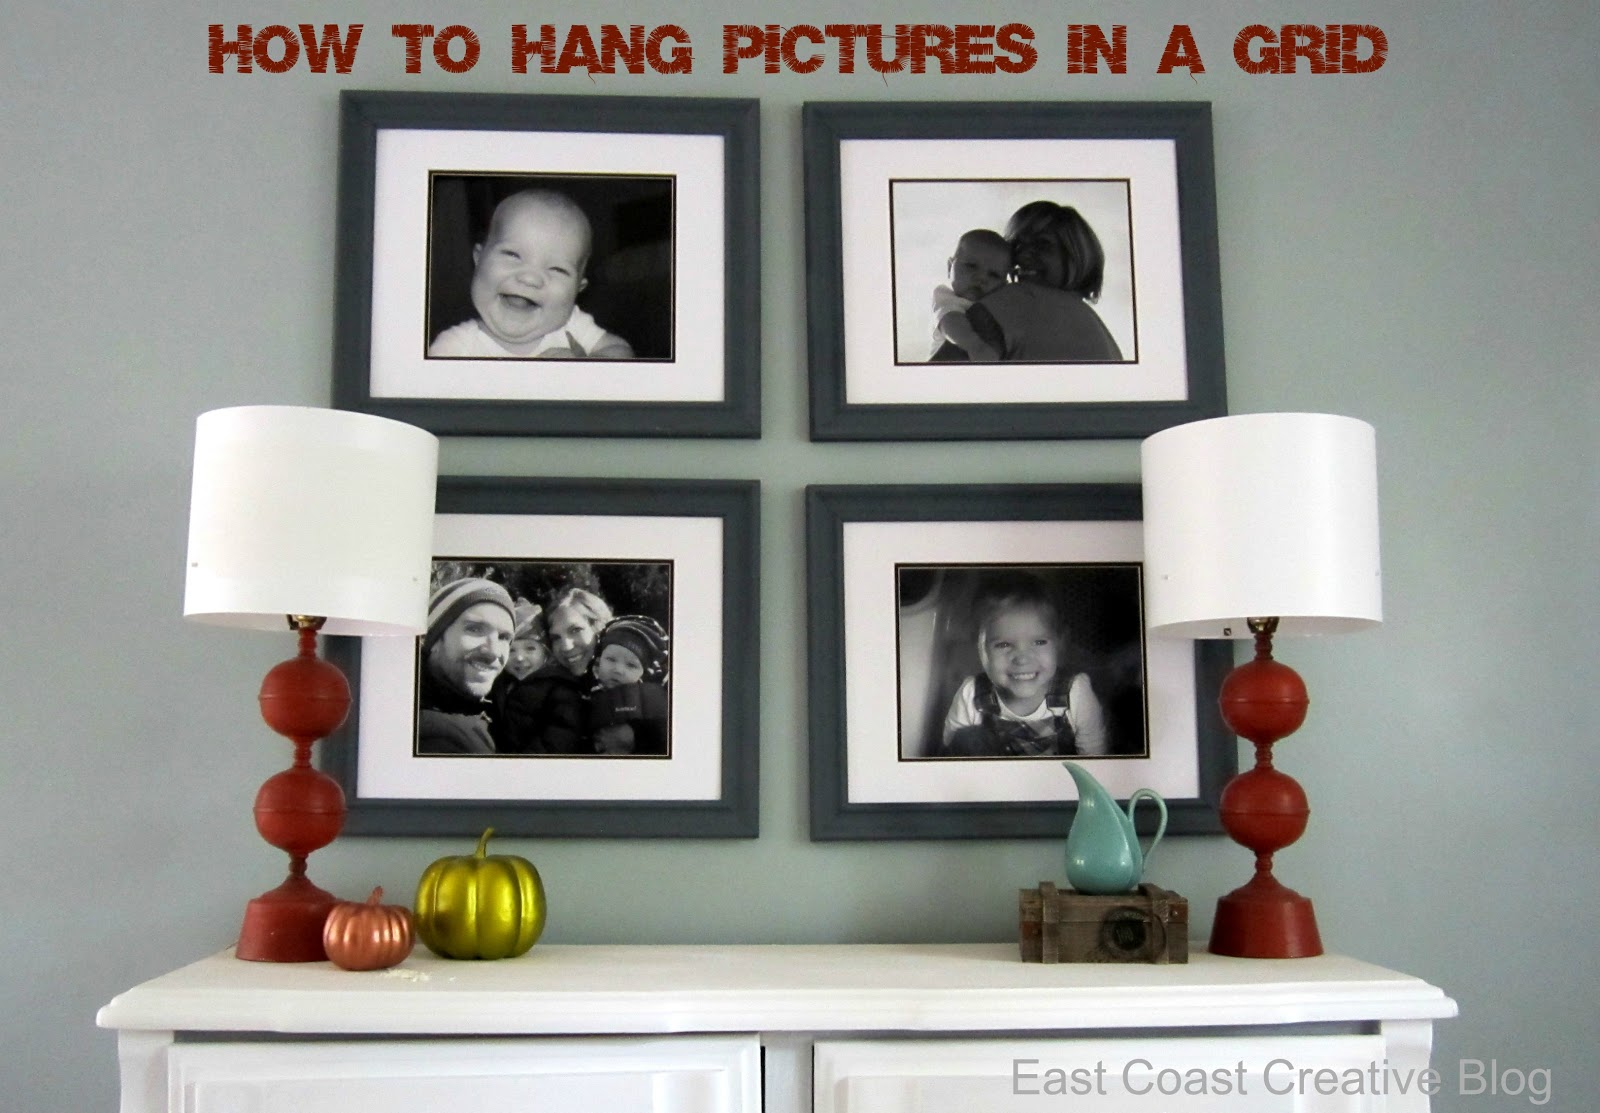 How To Hang Pictures in a Grid {Tutorial} - East Coast Creative Blog